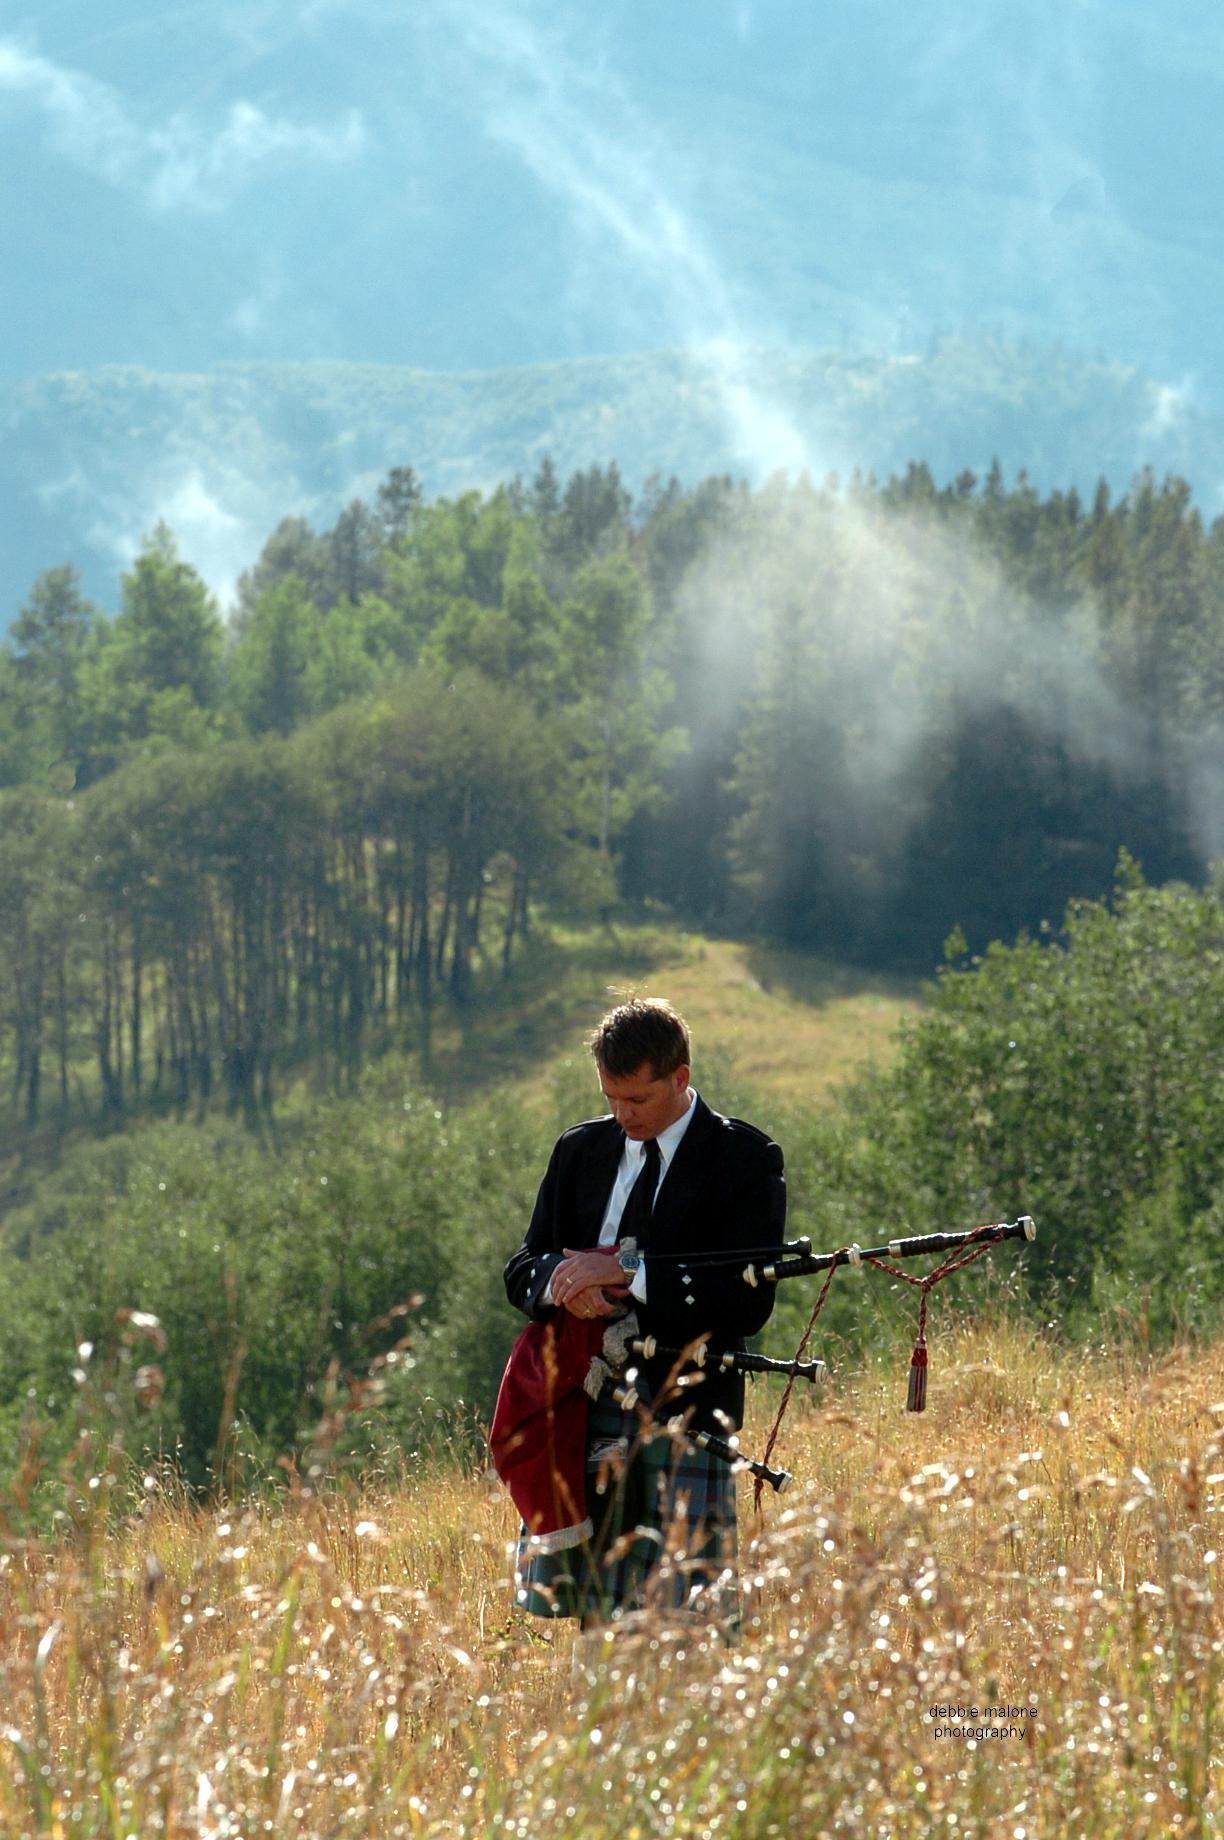 Colorado funeral bagpiper Michael Lancaster, photo by Debbie Malone